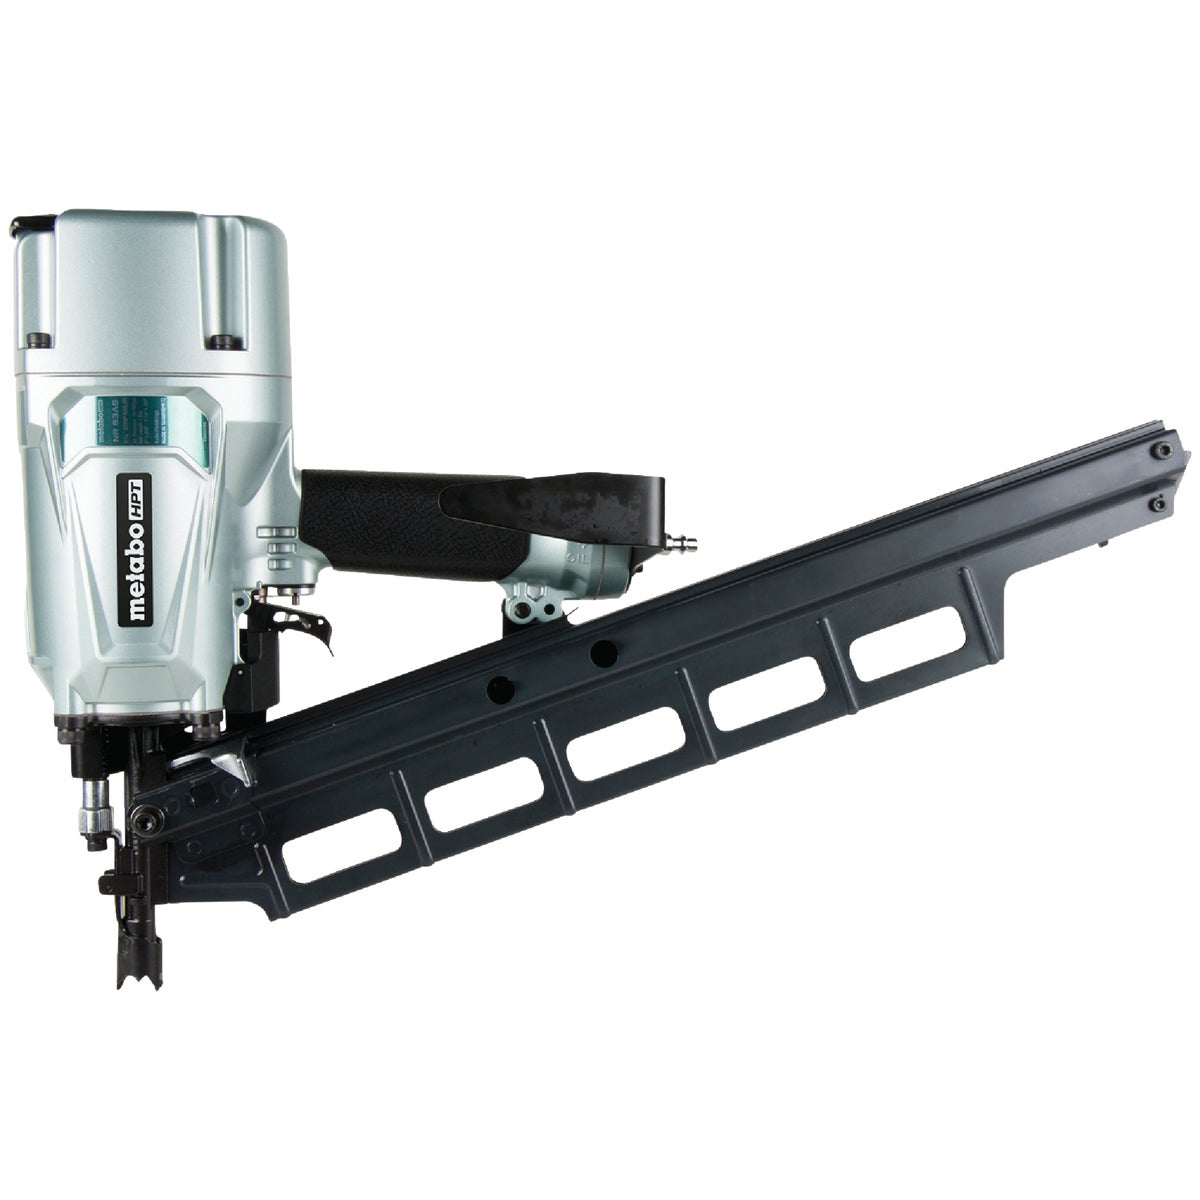 3-1/4 FRH FRAMING NAILER - NR83A3 by Hitachi Power Tools